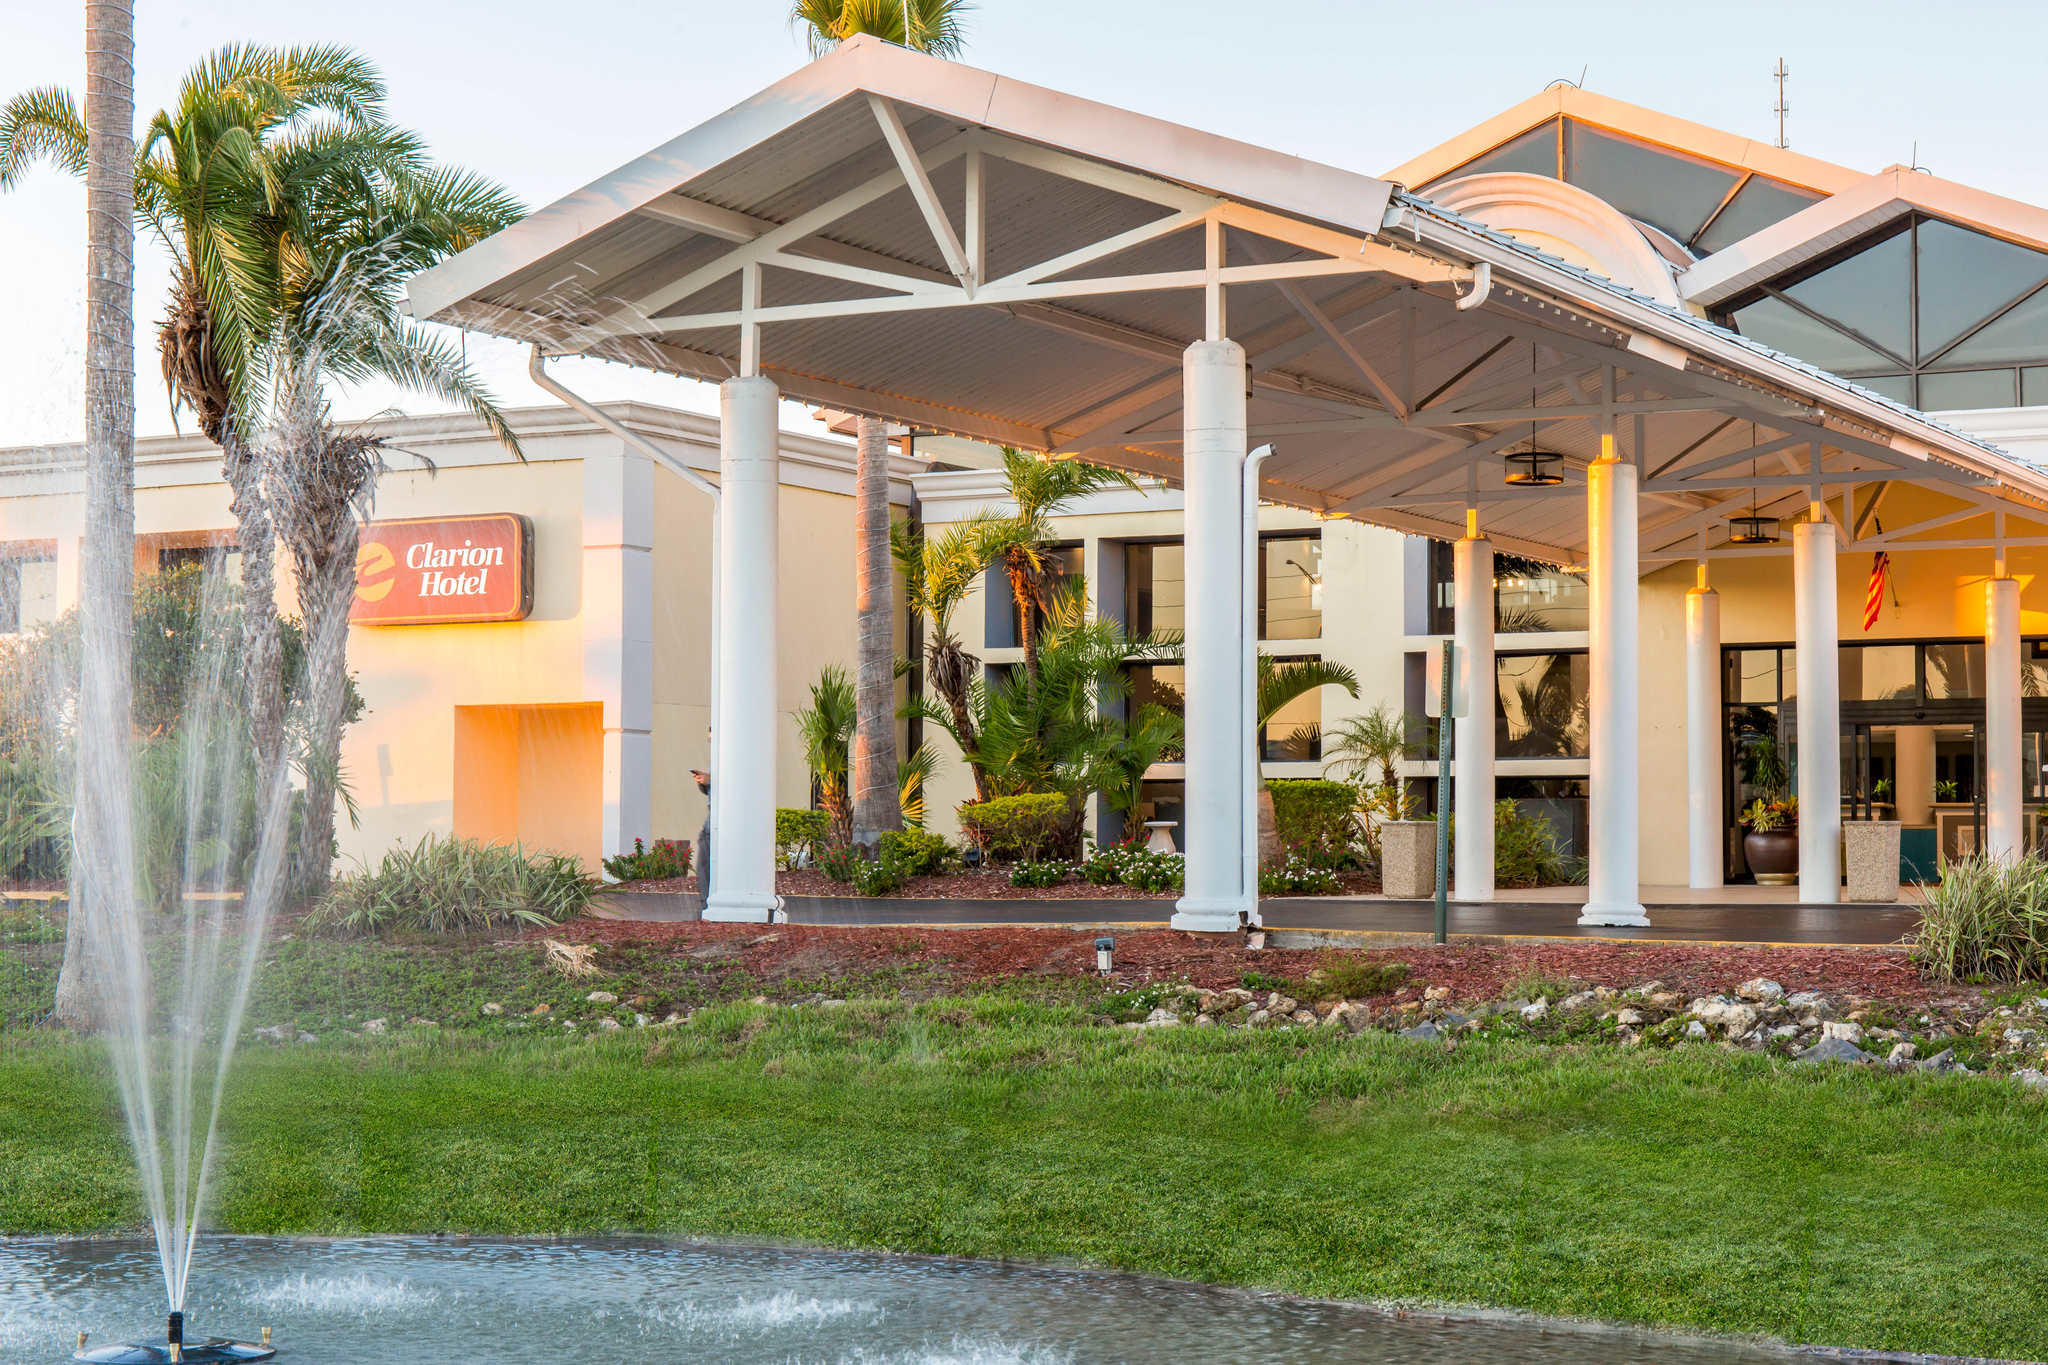 Clarion Hotel Orlando International Airport image 2